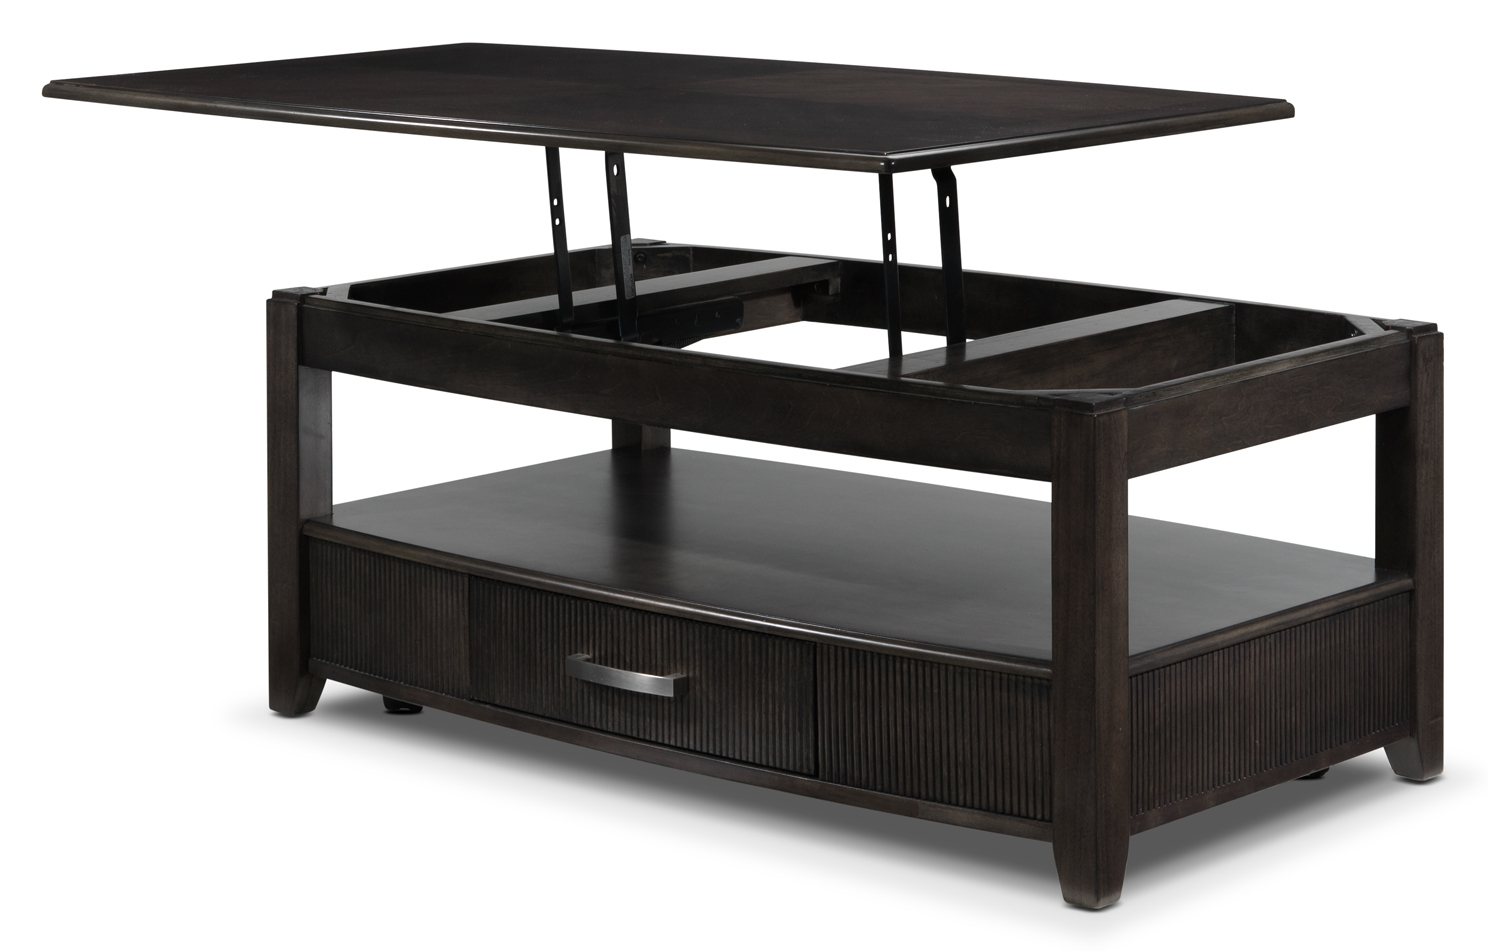 Lift top coffee tables with storage roy home design Lift top coffee tables storage